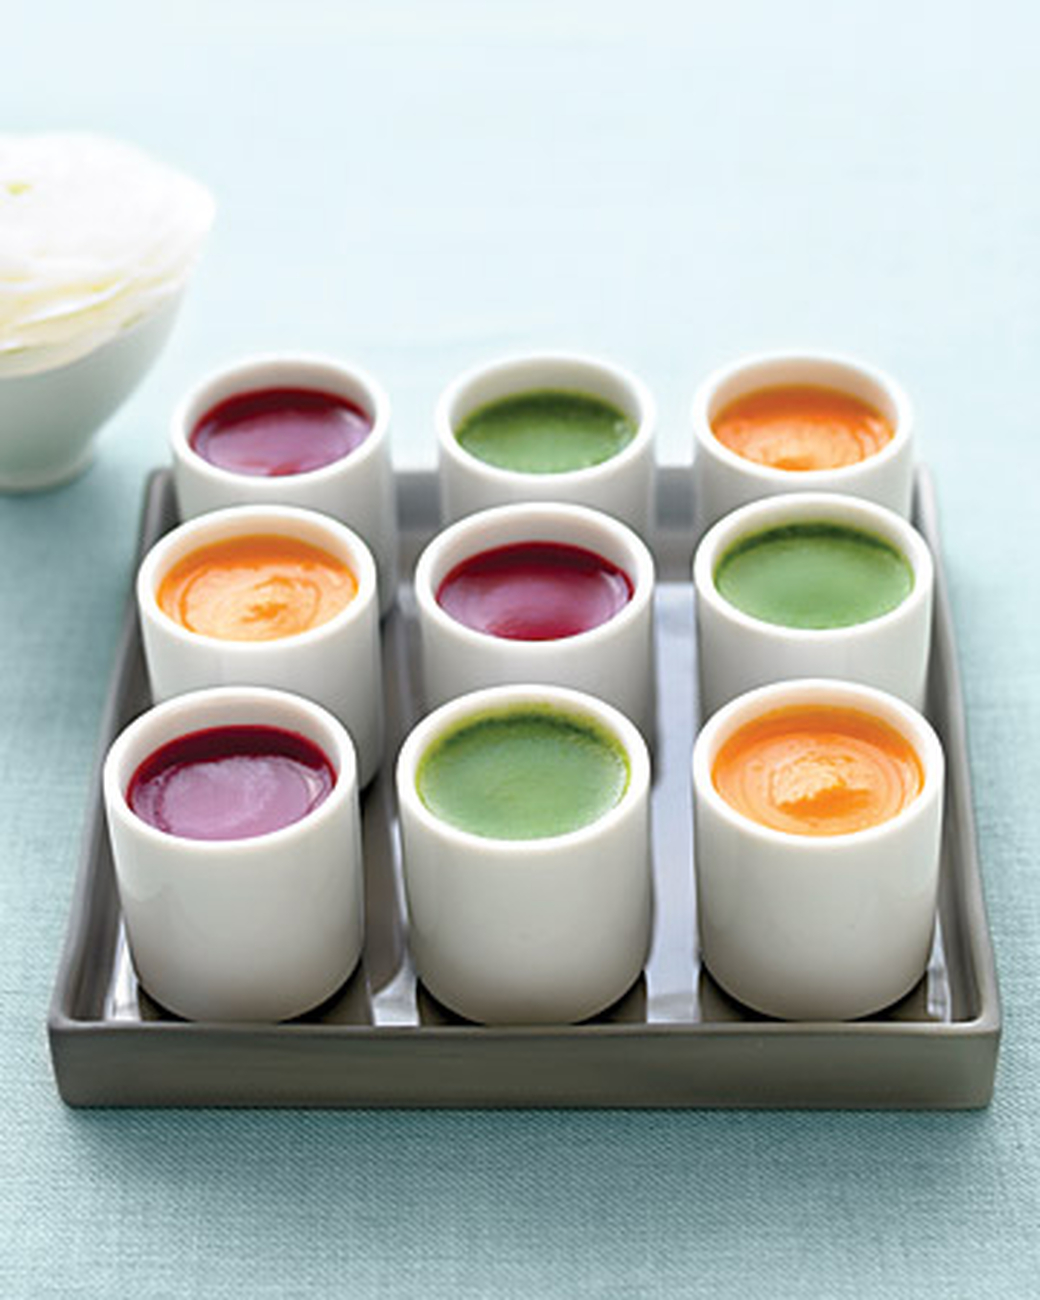 Savory soup shots  are a terrific idea for a chilly cocktail reception.